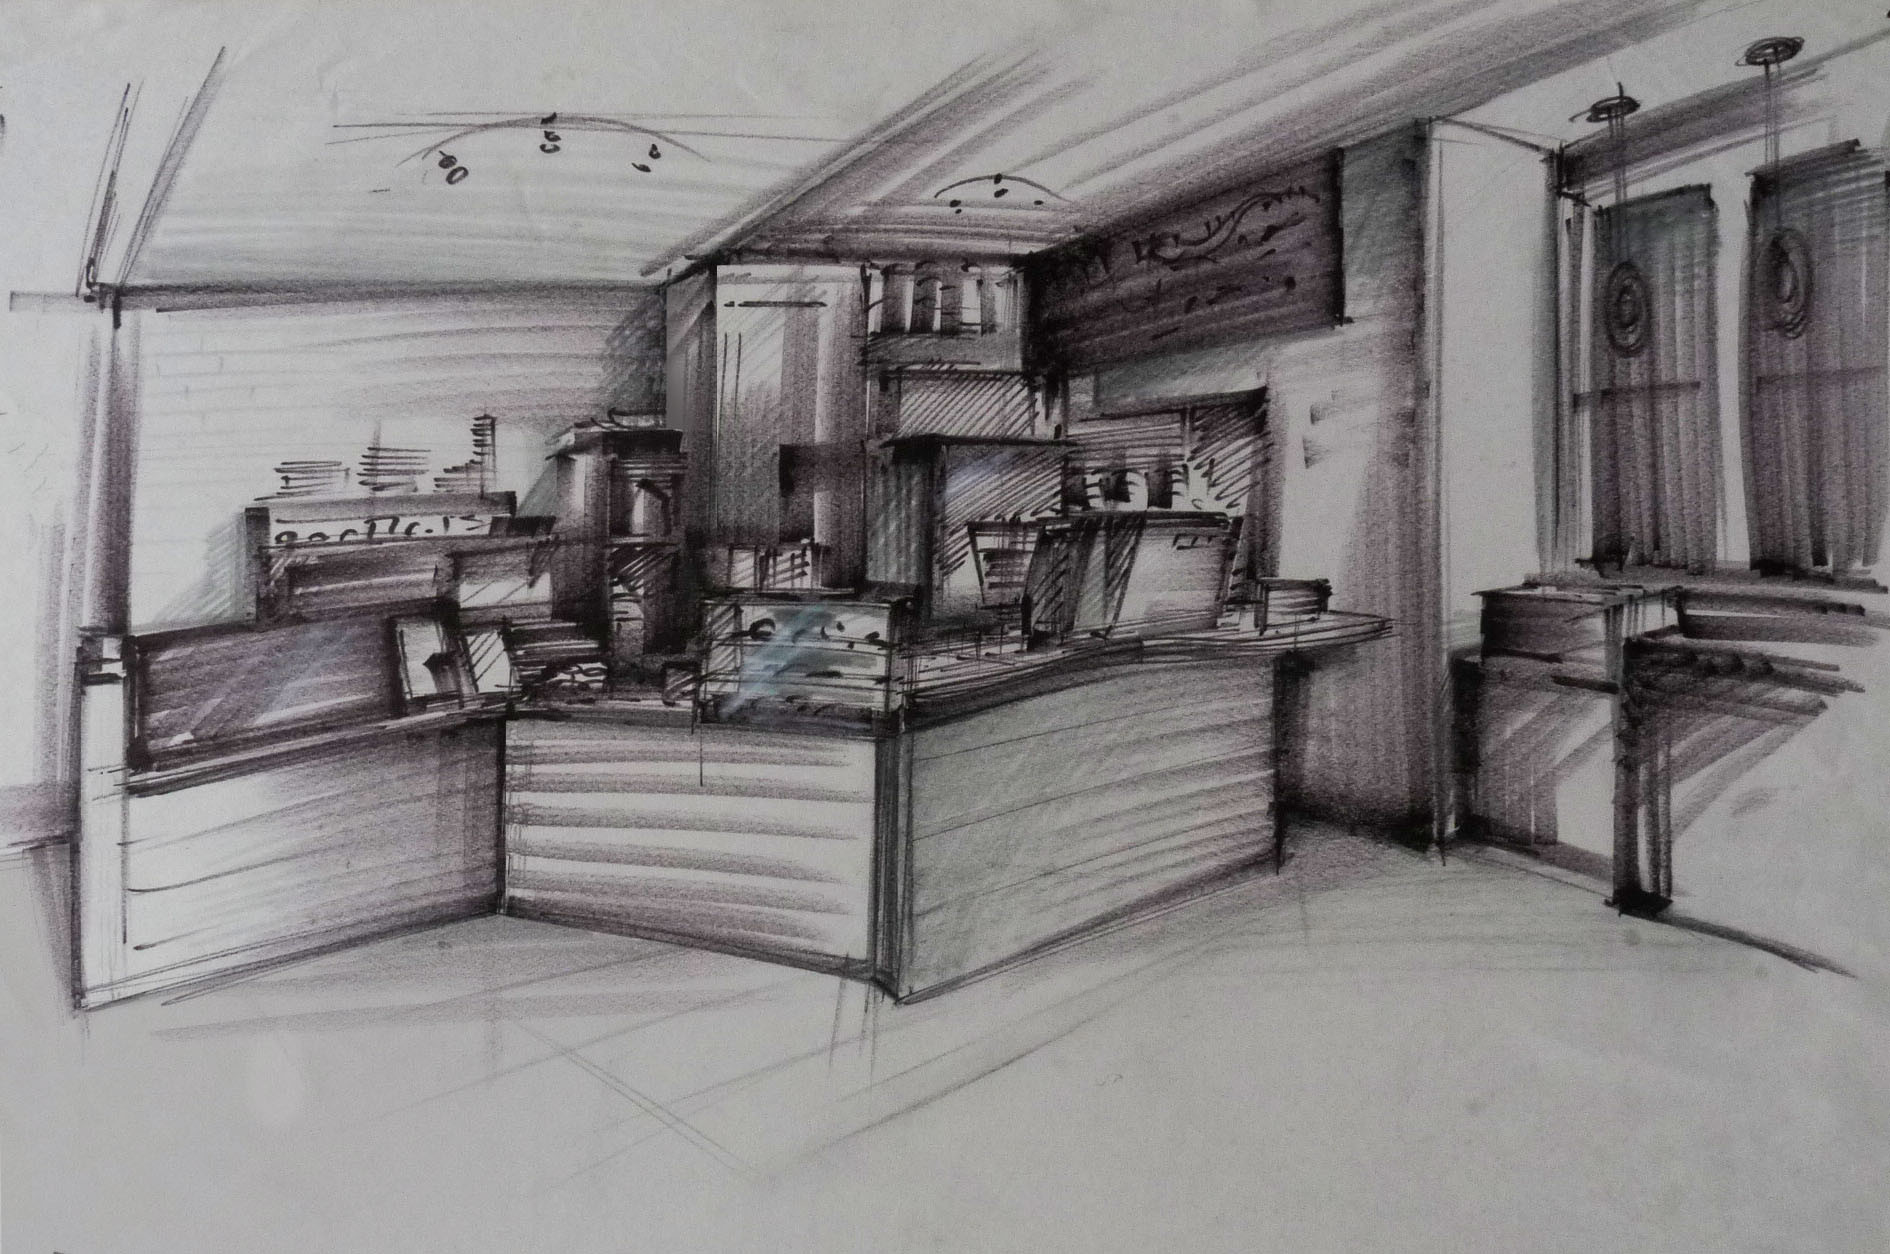 On-site Perspective Sketching